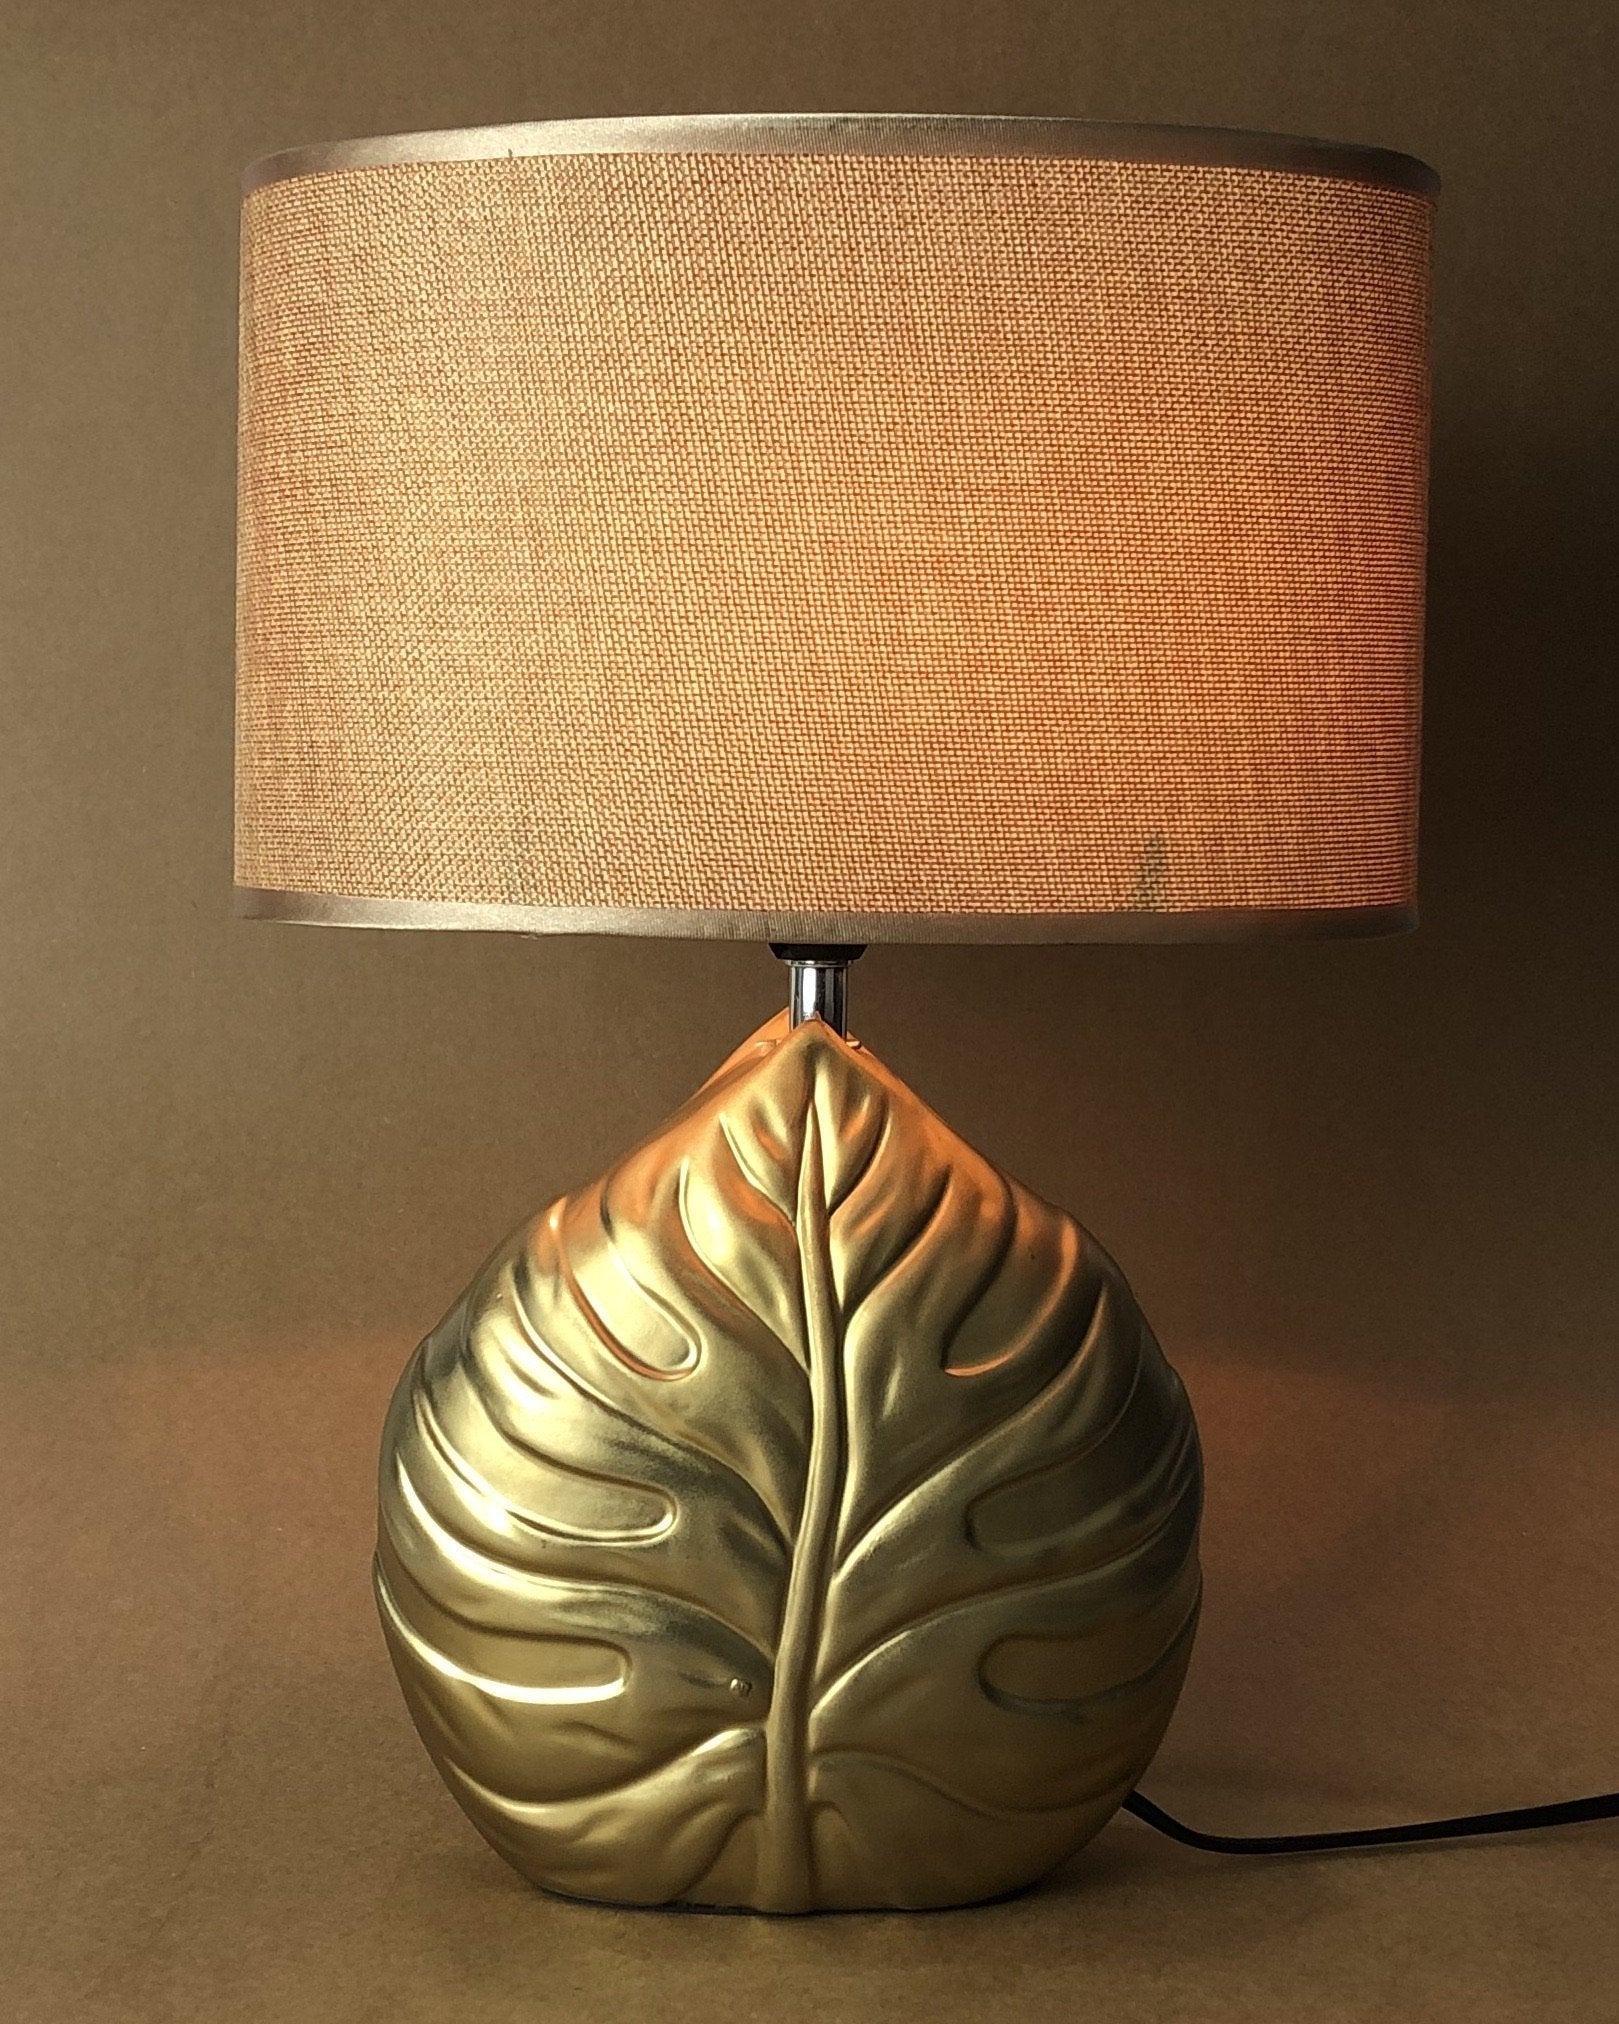 Ceramic Table Lamp with Shade with Bulb